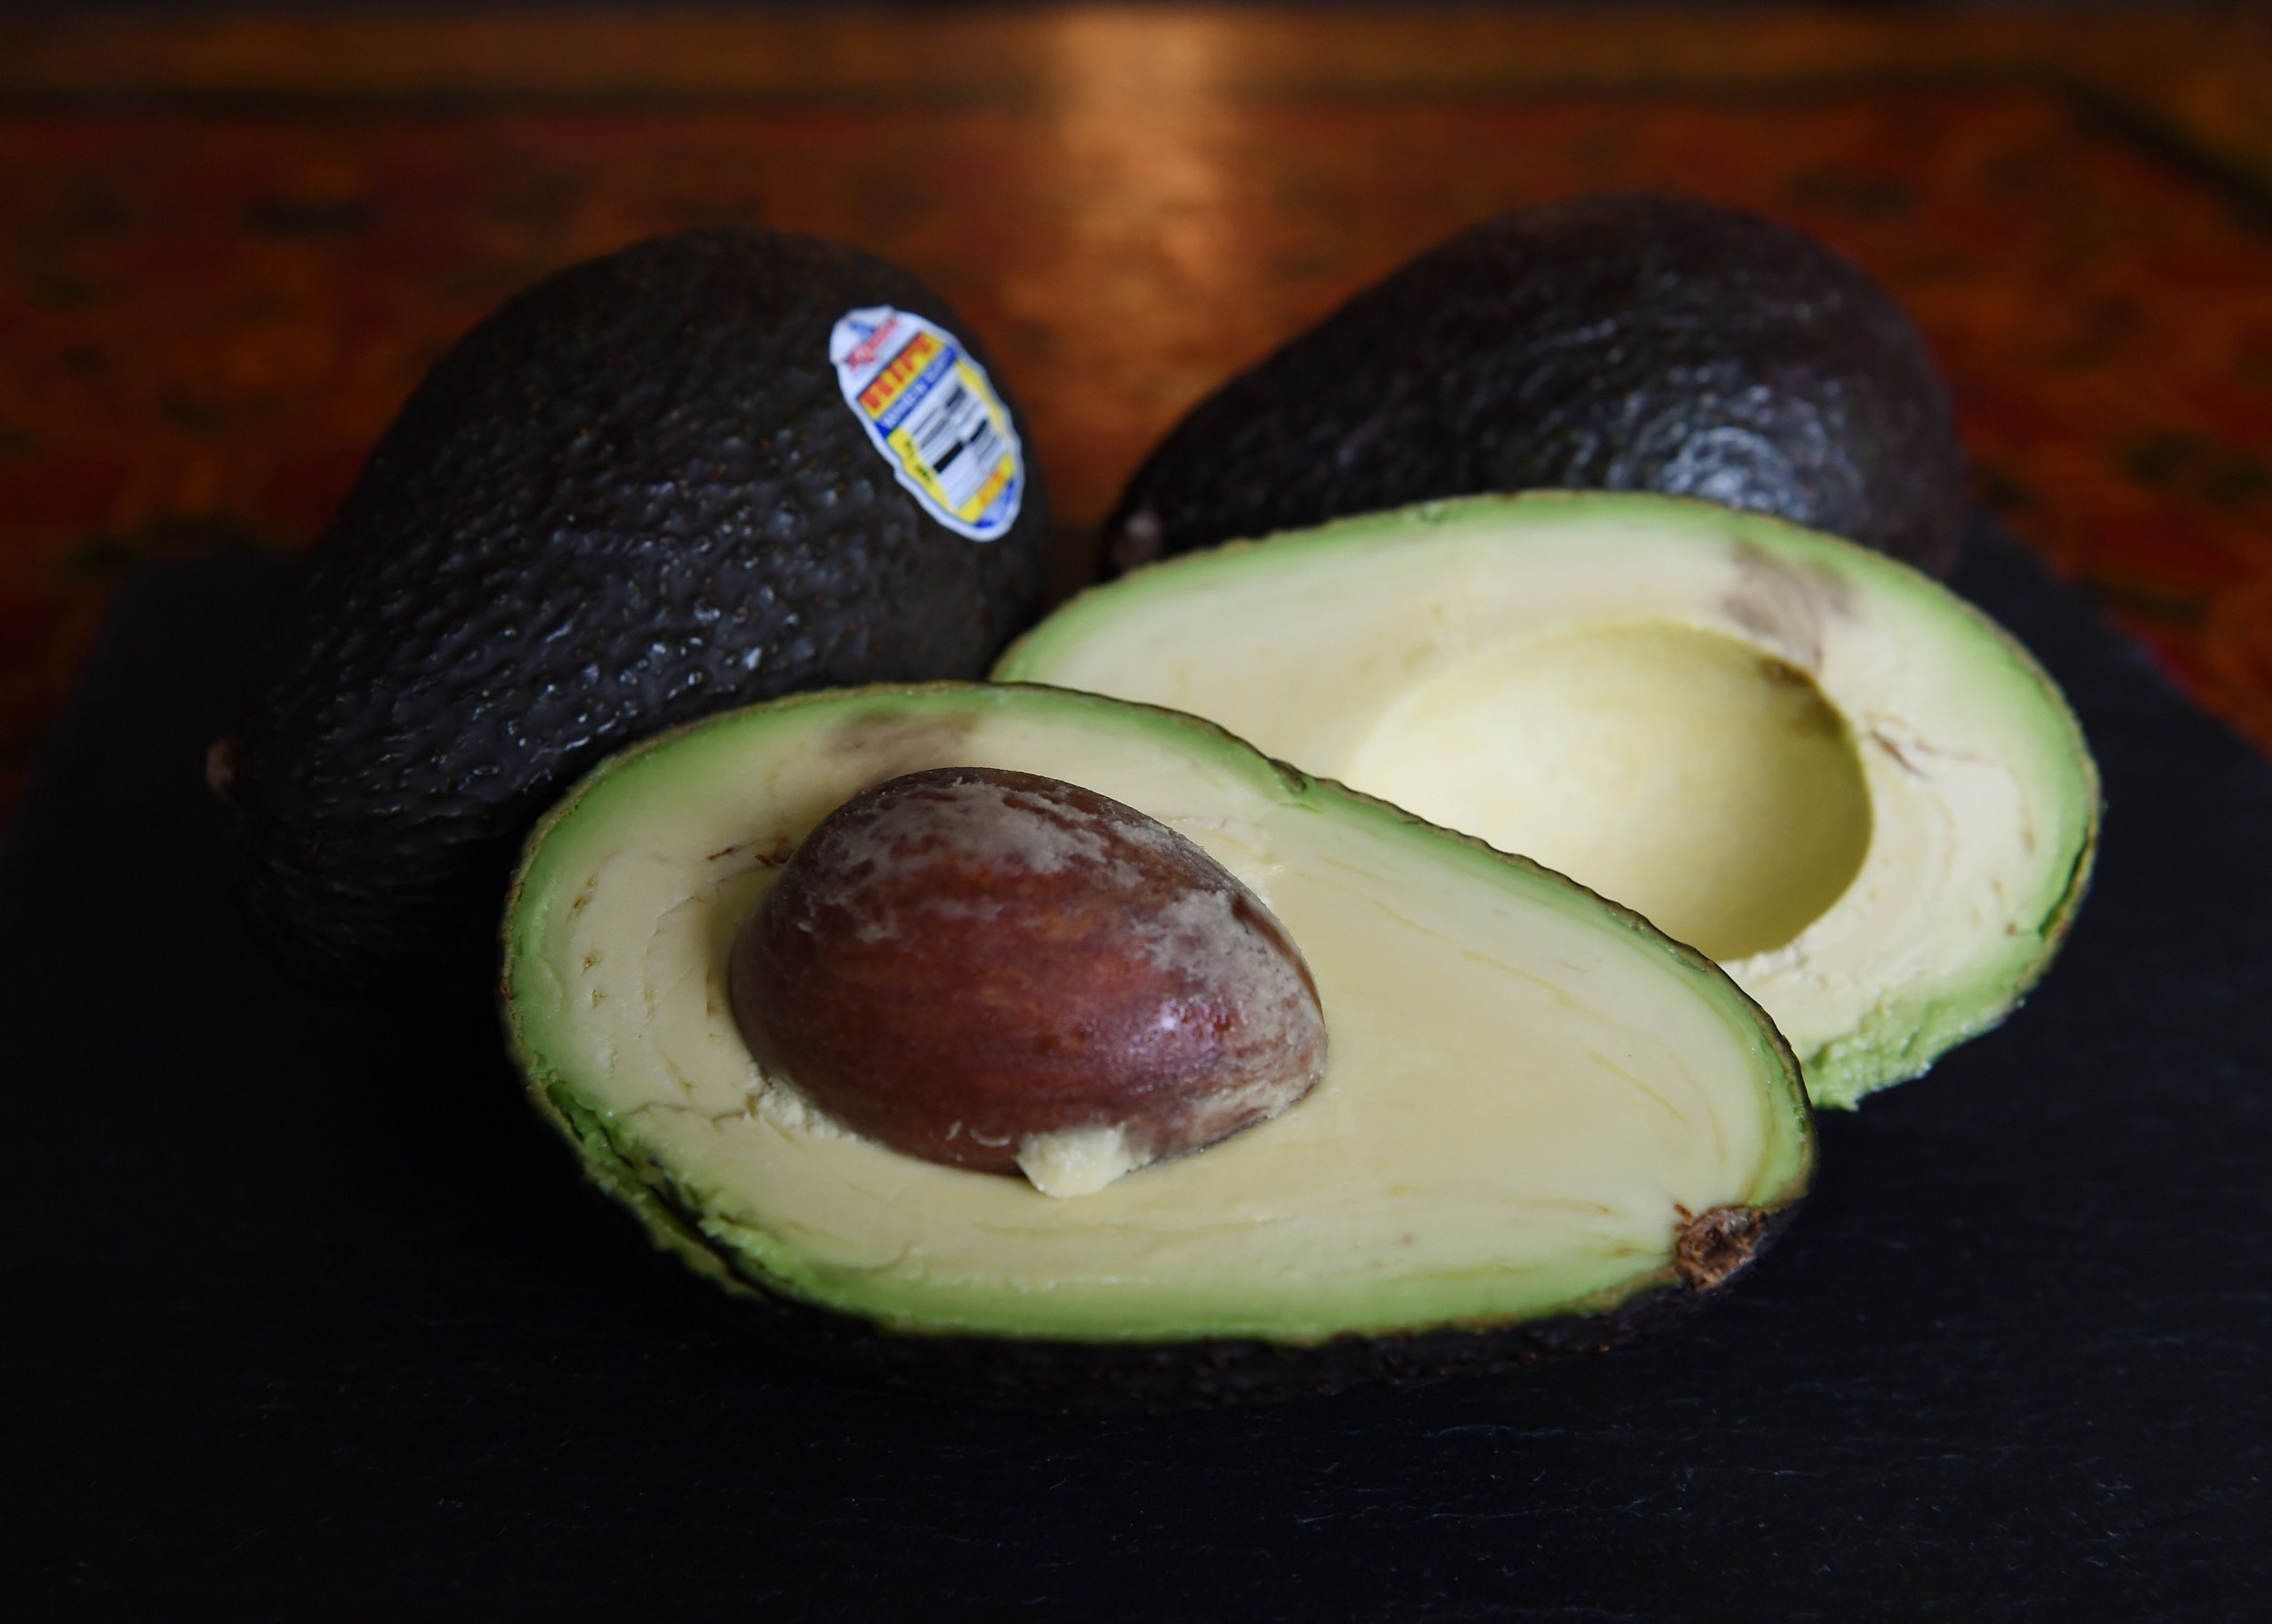 Avocado Boom Avocado Boom Pushes Pret A Manger Sales To Record High